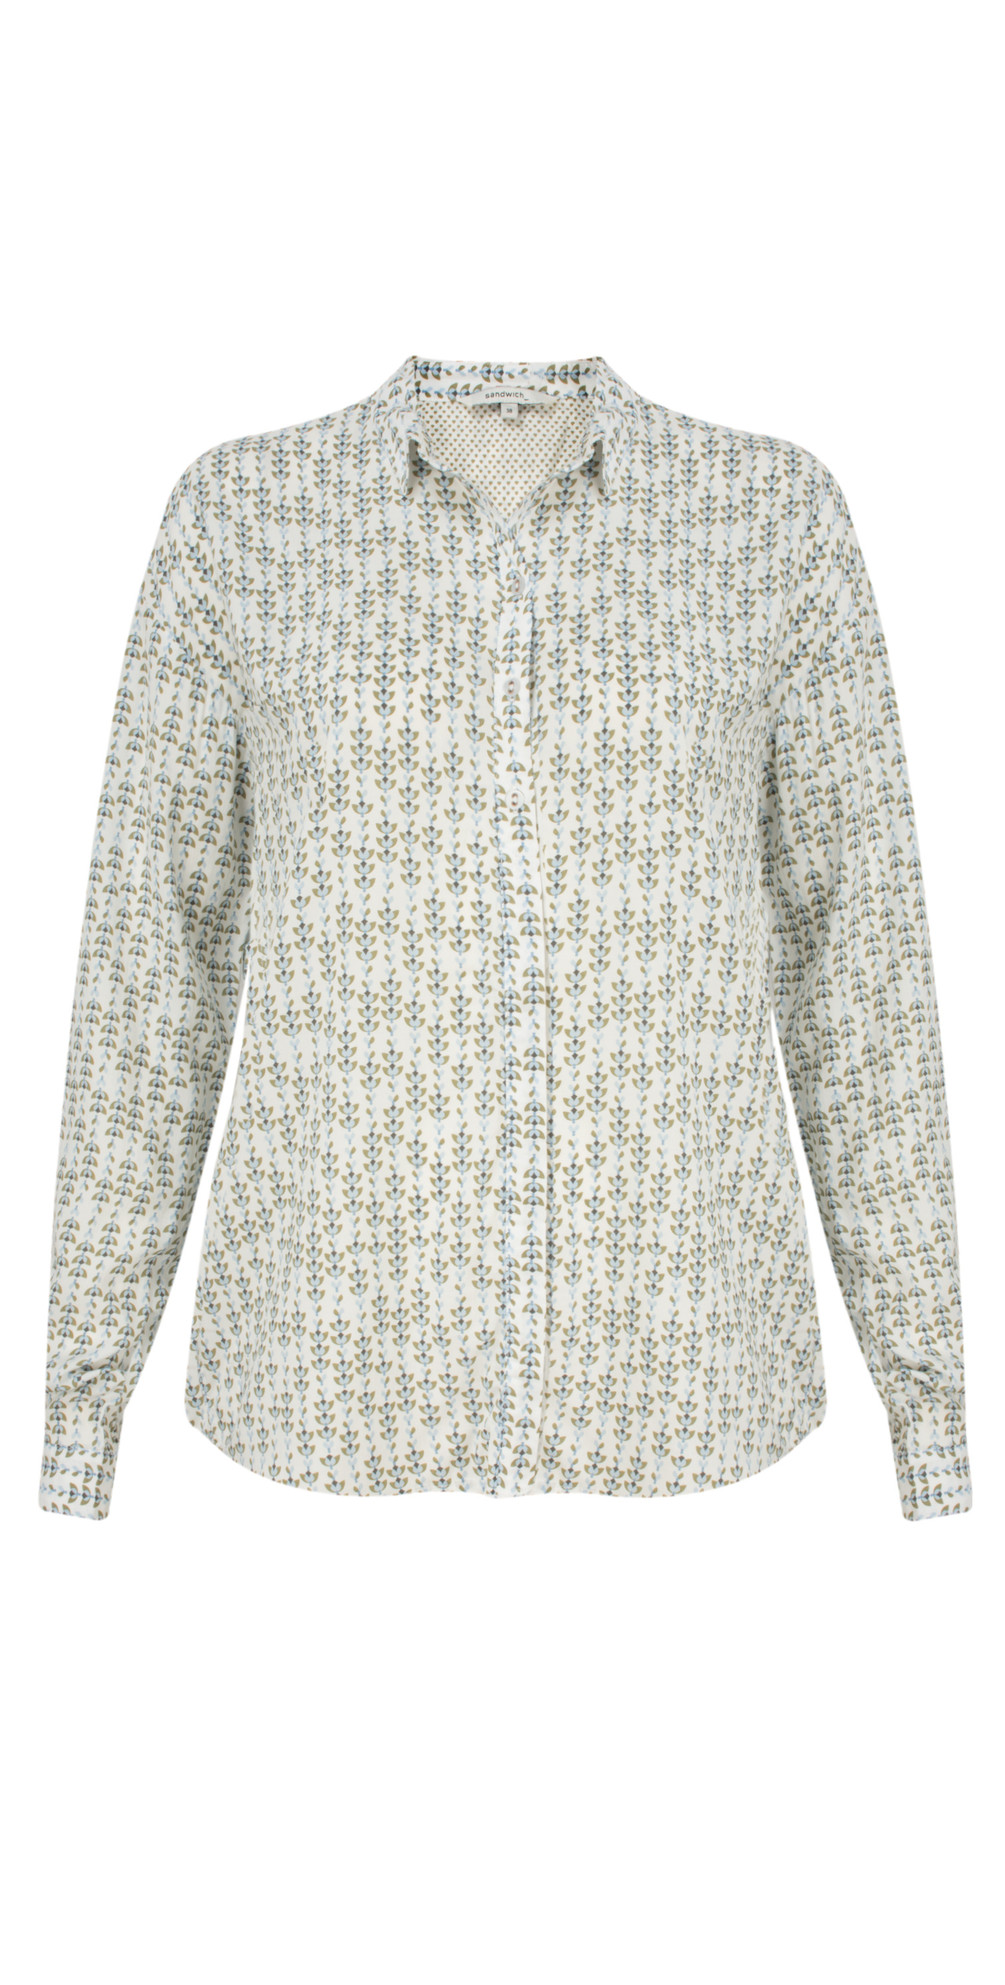 Lotus Woven Patterned Blouse main image